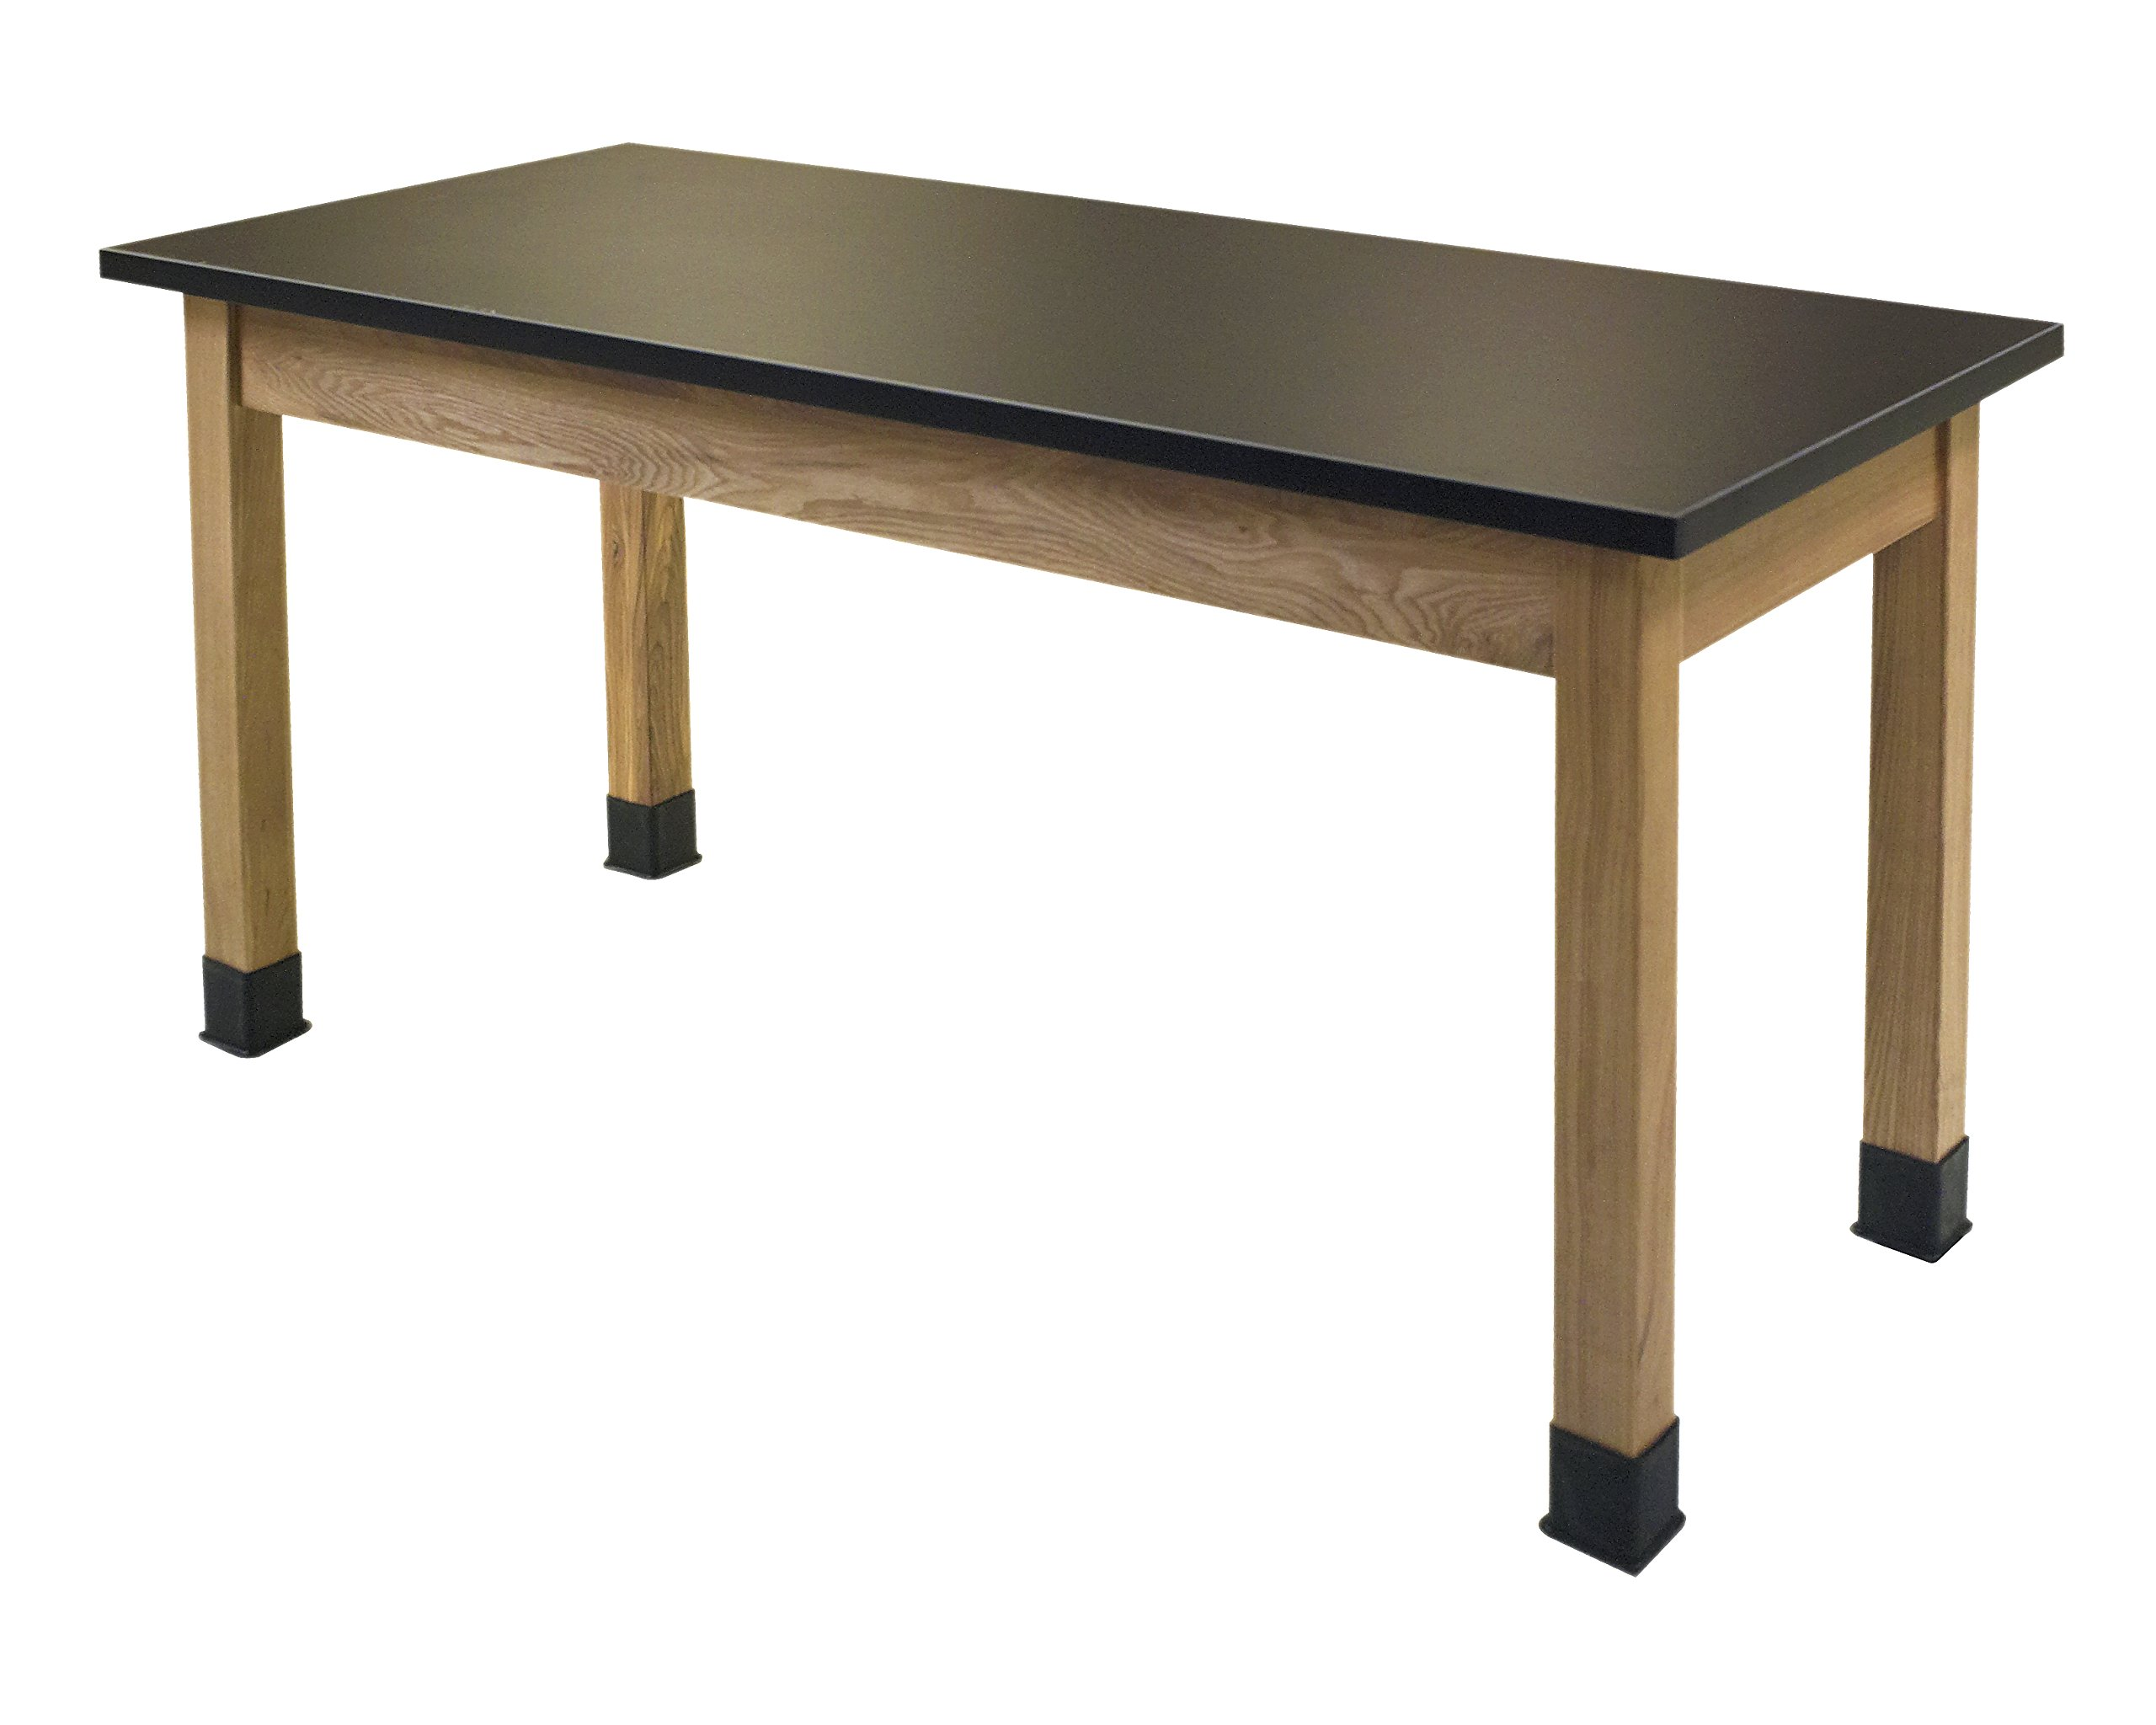 National Public Seating SLT2460 Chem-Res Top Science Lab Table, Plain Front, No Book Boxes, 30'' Height, 24'' Width, 60'' Length, Black/Oak by National Public Seating